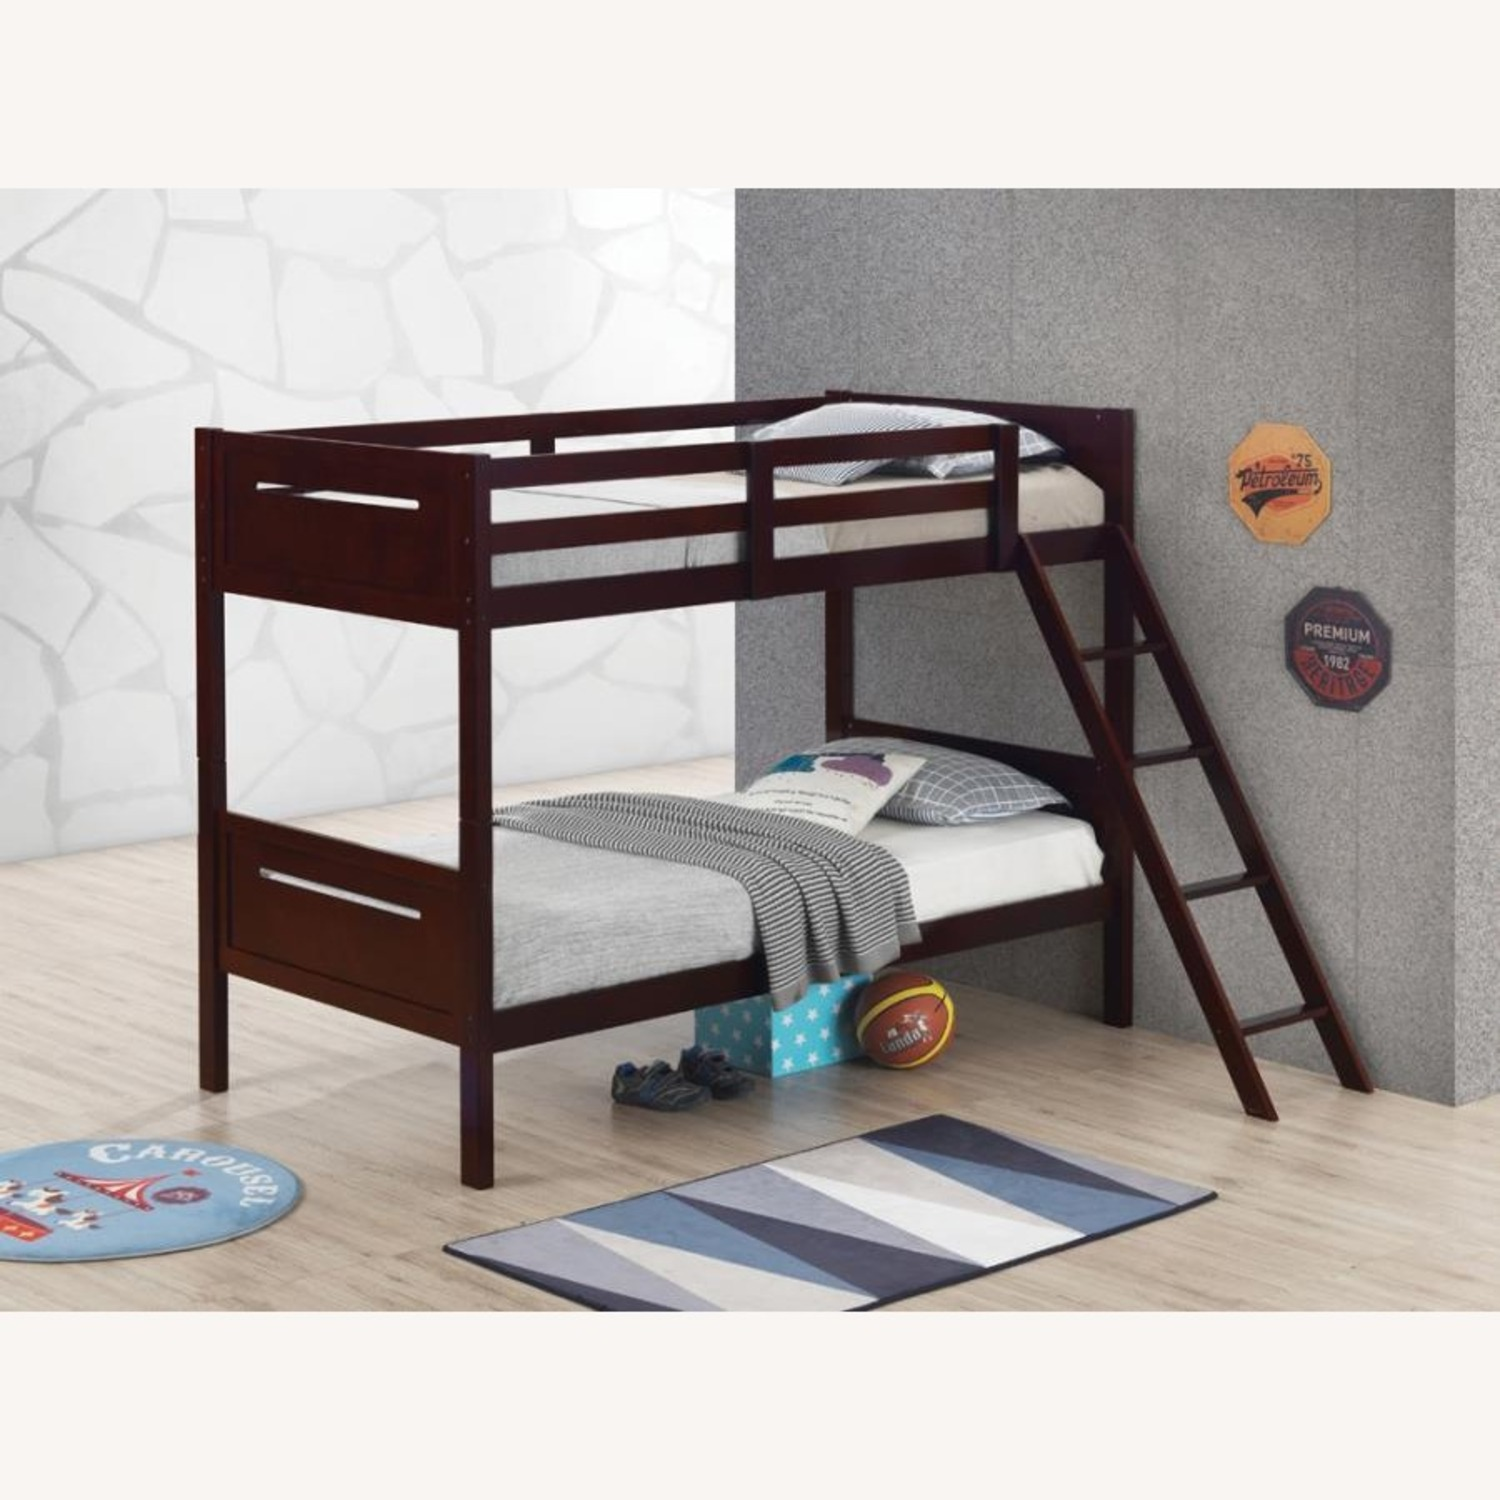 Bunk Bed In Espresso Solid Rubberwood Finish - image-4